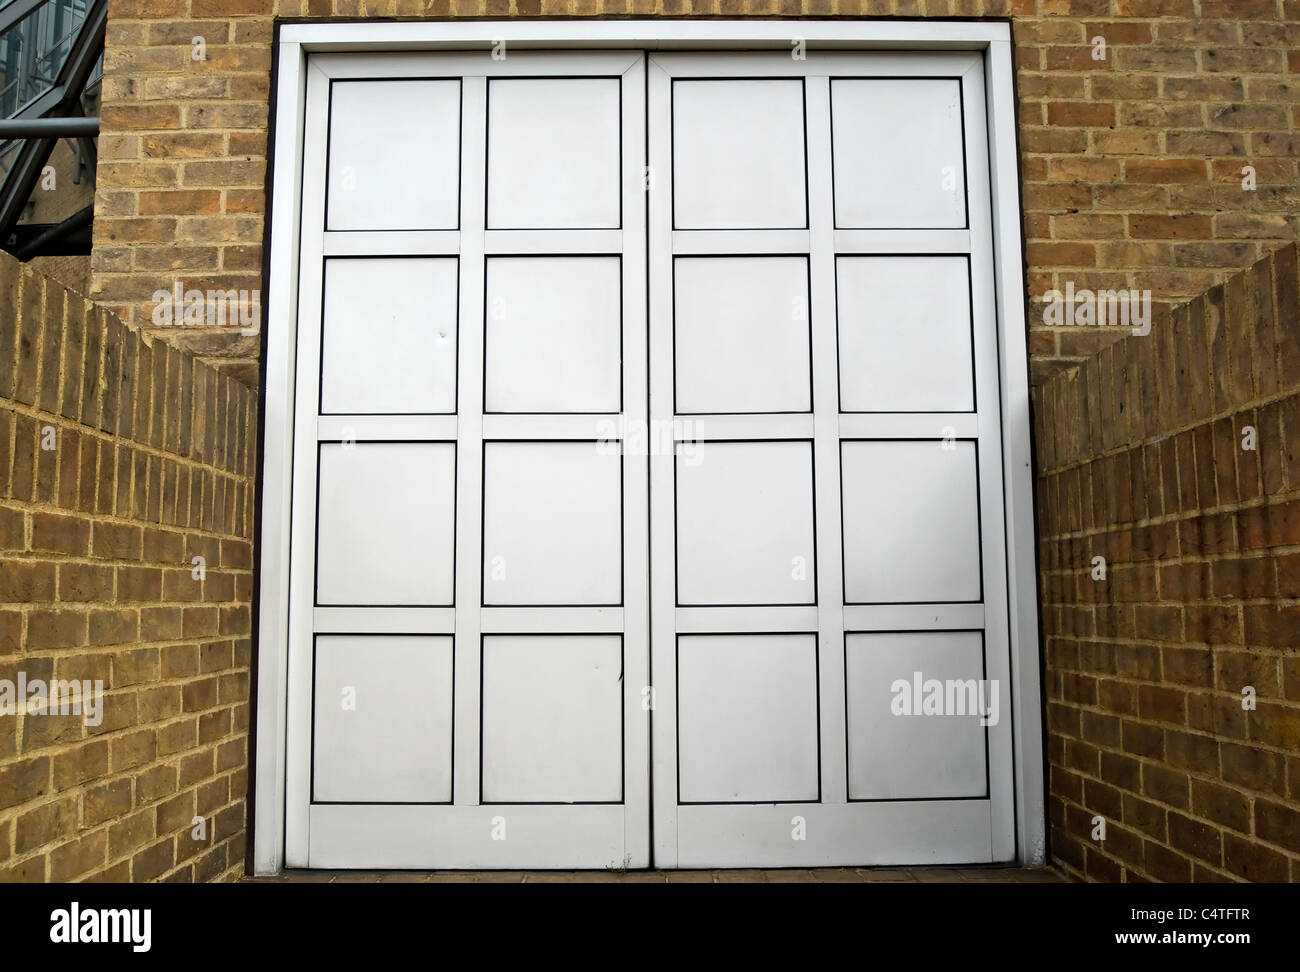 closed double door with no exterior handle set into a brick wall - Stock Image